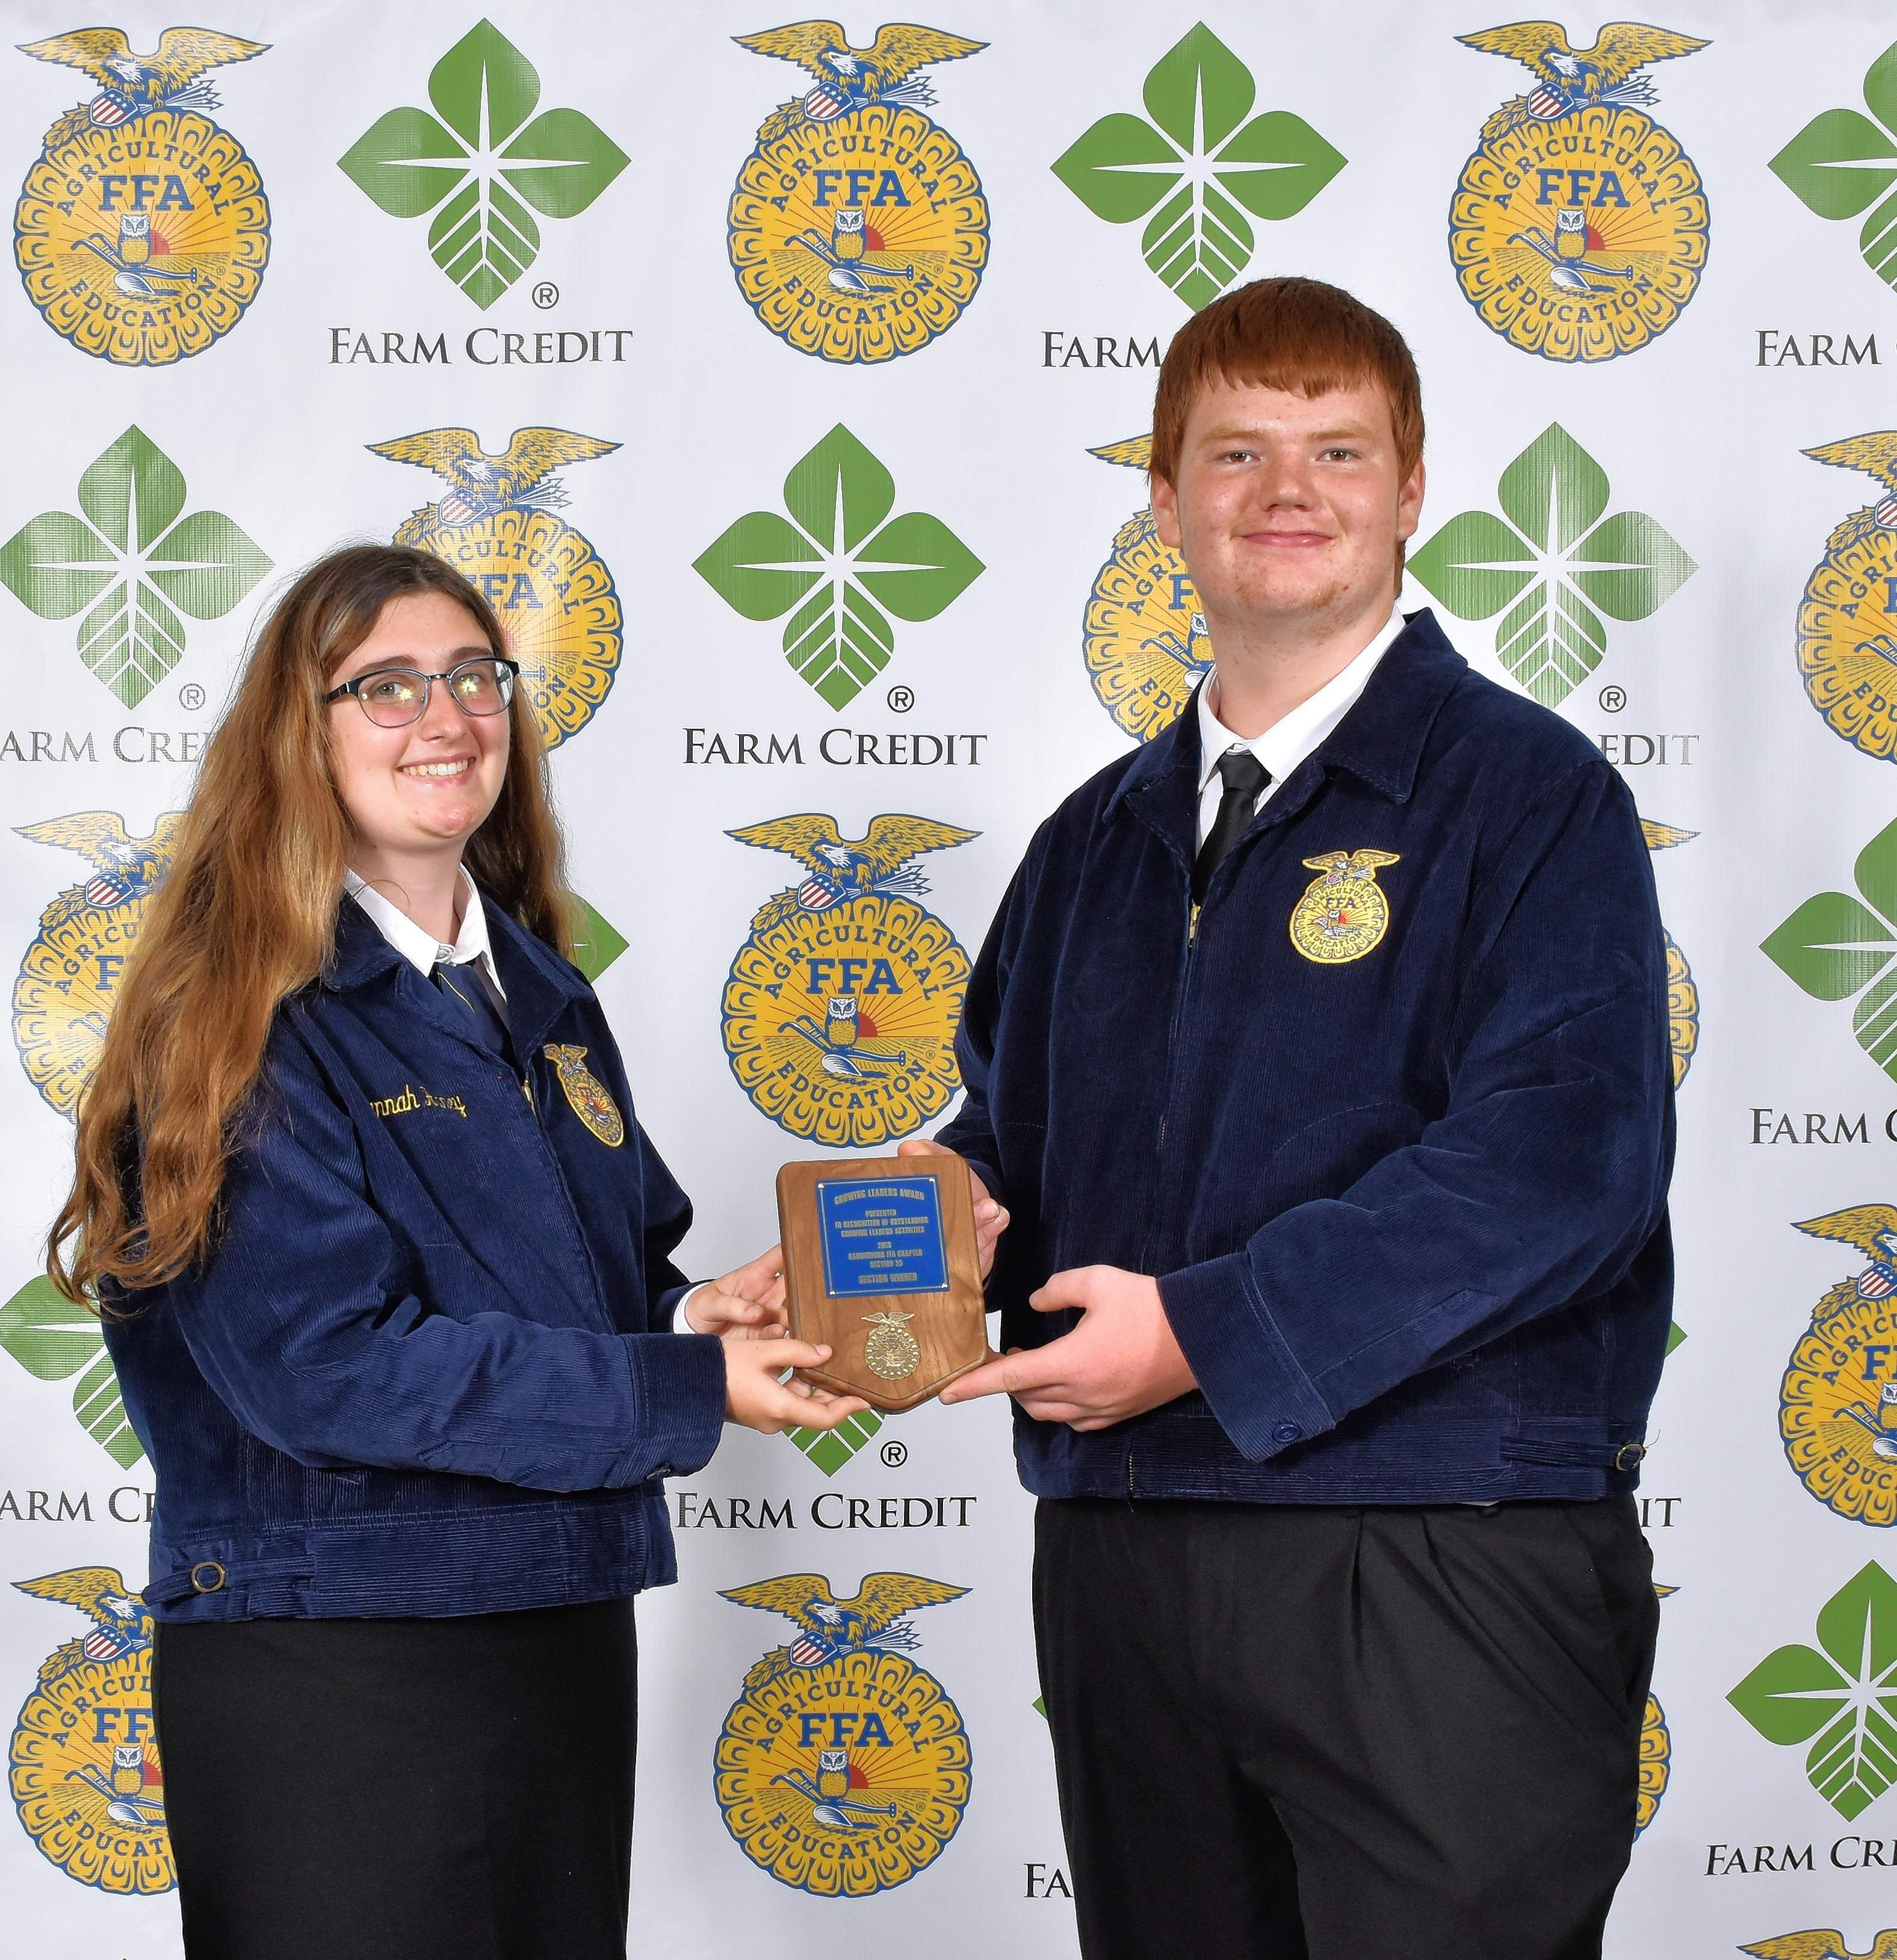 Hannah Haney, left, and Riley Harper with the Growing Leaders National Chapter Section Award. As part of the National Chapter Award program and the chapter's program of activities, Growing Leaders is designed to encourage the chapter to develop individual and cooperative activities to enhance students' life skills.